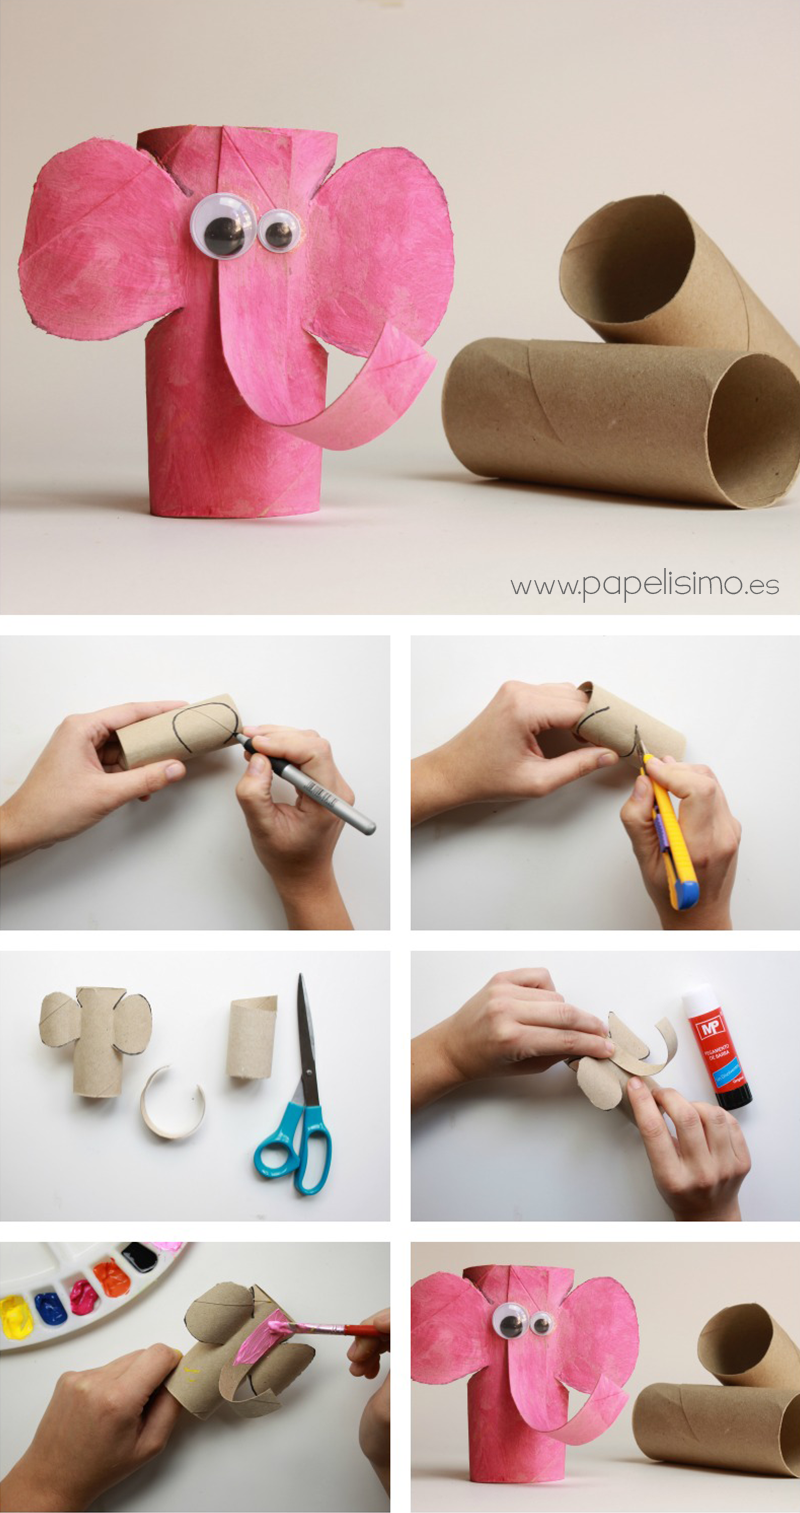 Animal Crafts with Toilet Paper Rolls